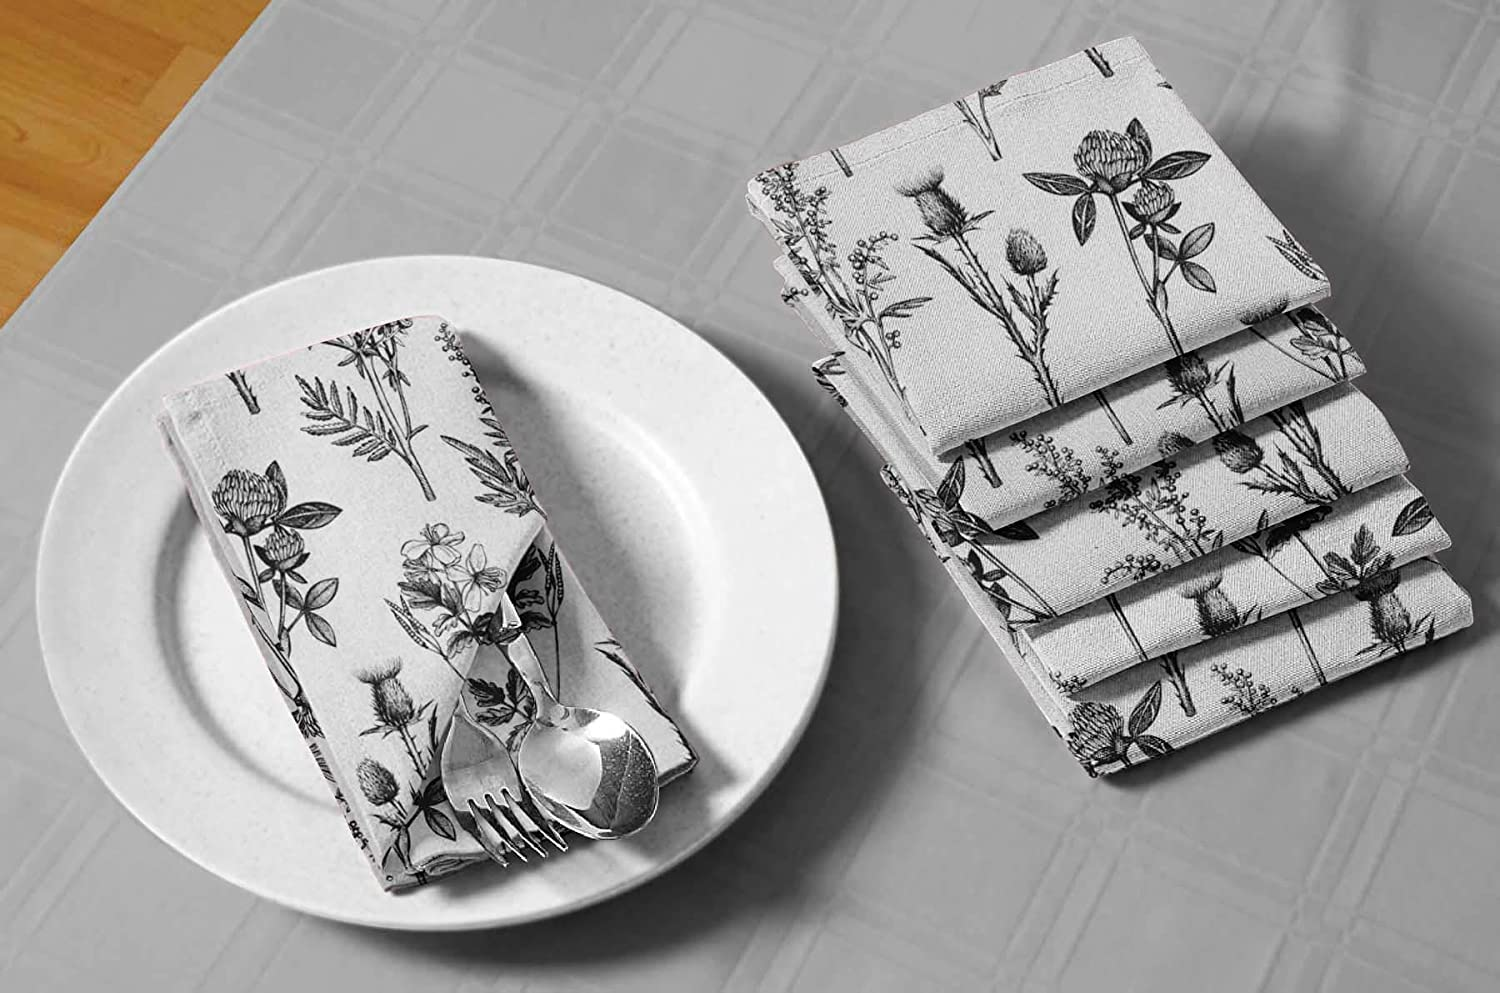 S4sassy Black Clover Daisy Floral Re Usable Napkin Dinning Set Wedding Party Table Linen 22 X 22 Pack Of 6 Home Kitchen